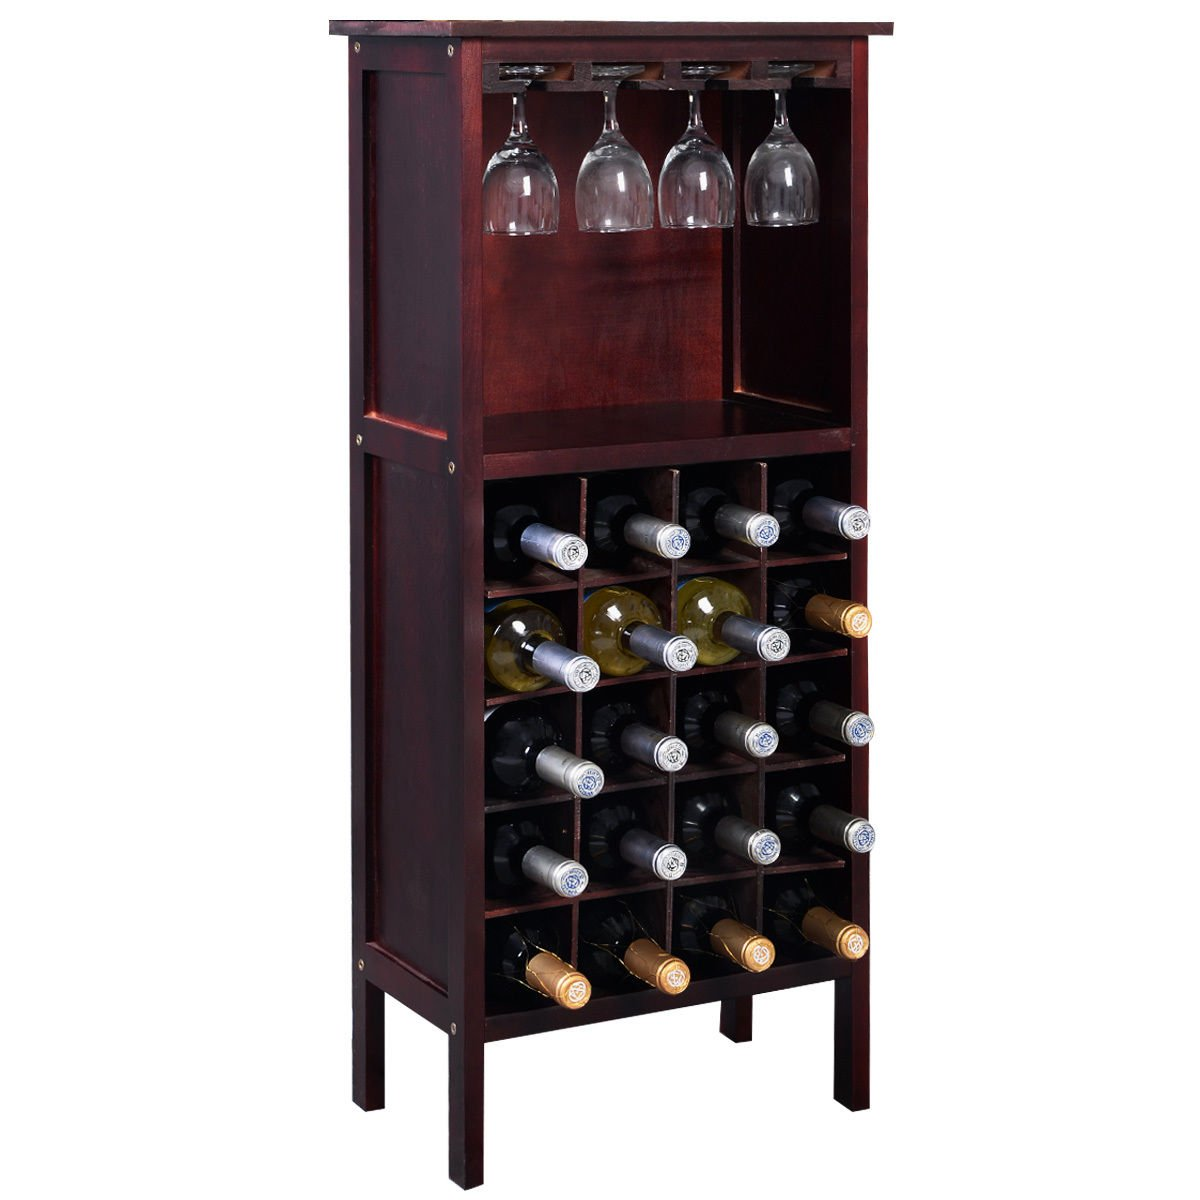 allblessings777 Wood Wine Bottle Holder Storage Cabinet Kitchen Home Bar w/Glass Rack